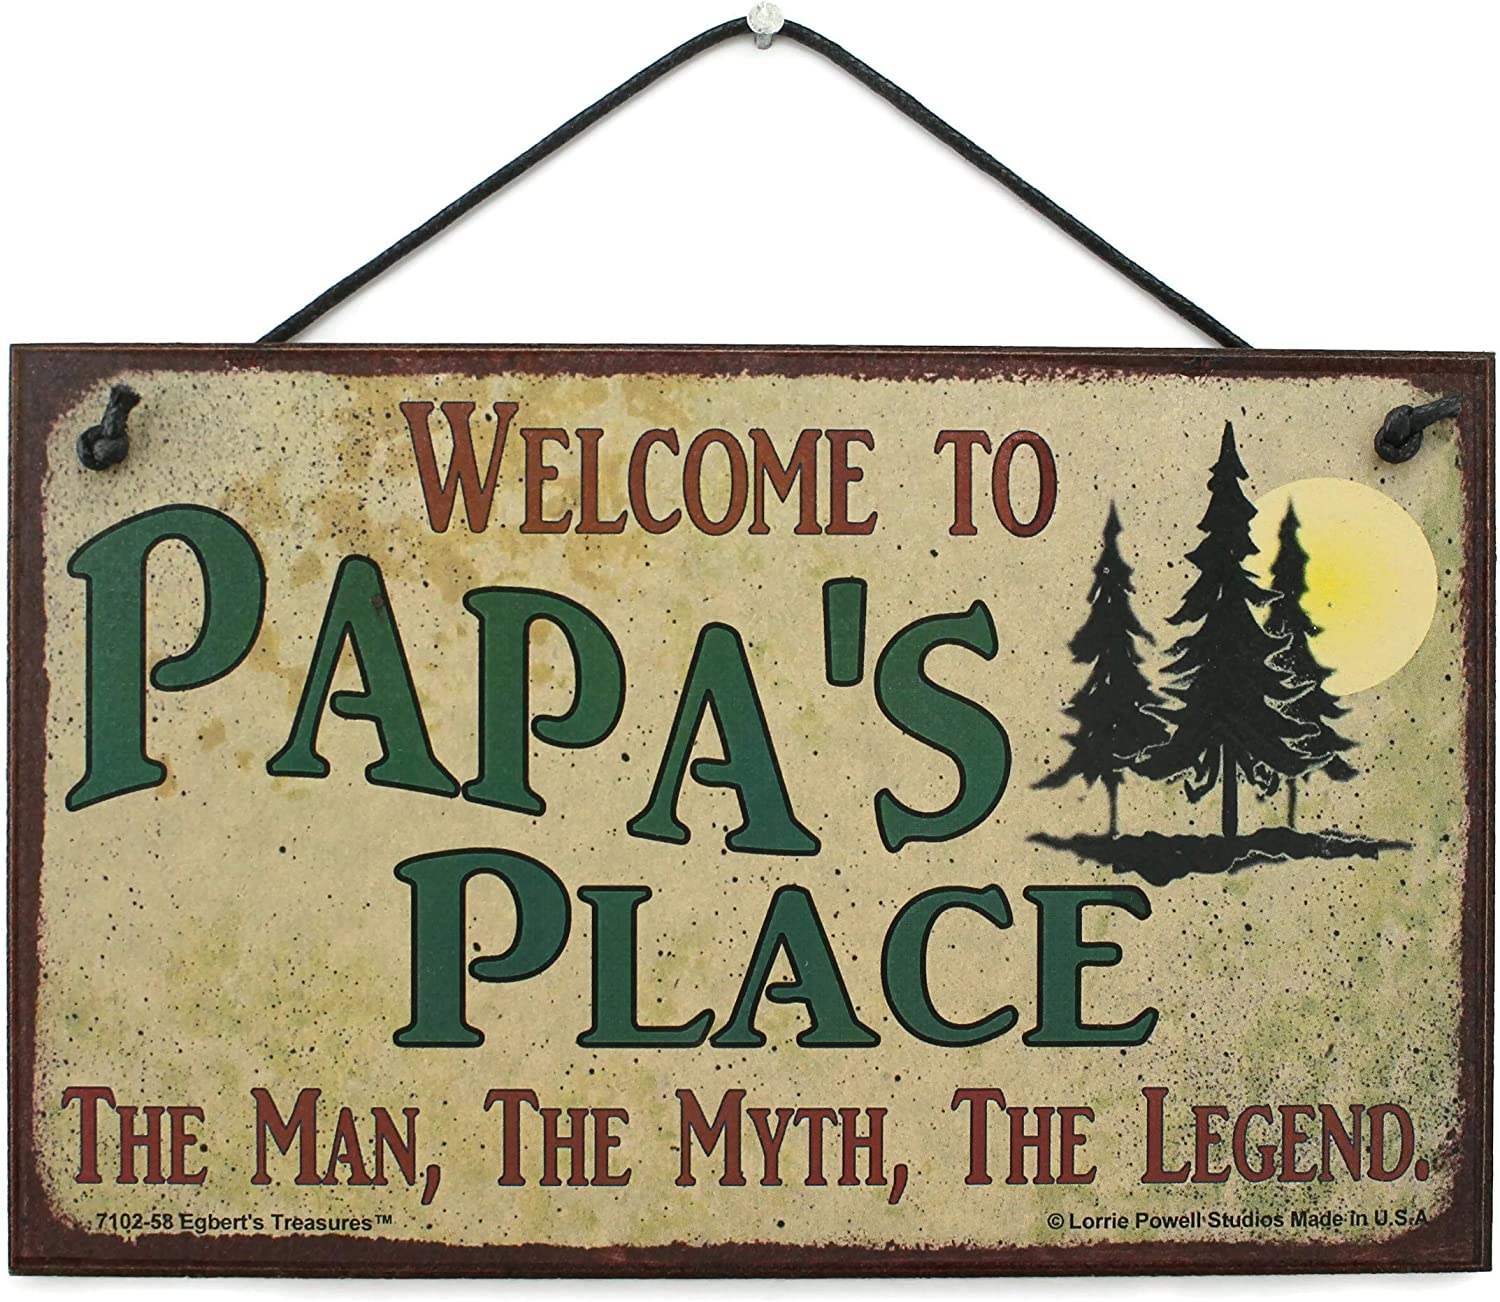 Egbert's Treasures 5x8 Vintage Style Sign with Pine Trees Saying Welcome to Papa's Place The Man, The Myth, The Legend. Decorative Fun Universal Household Family Signs for Grandpa (5x8)